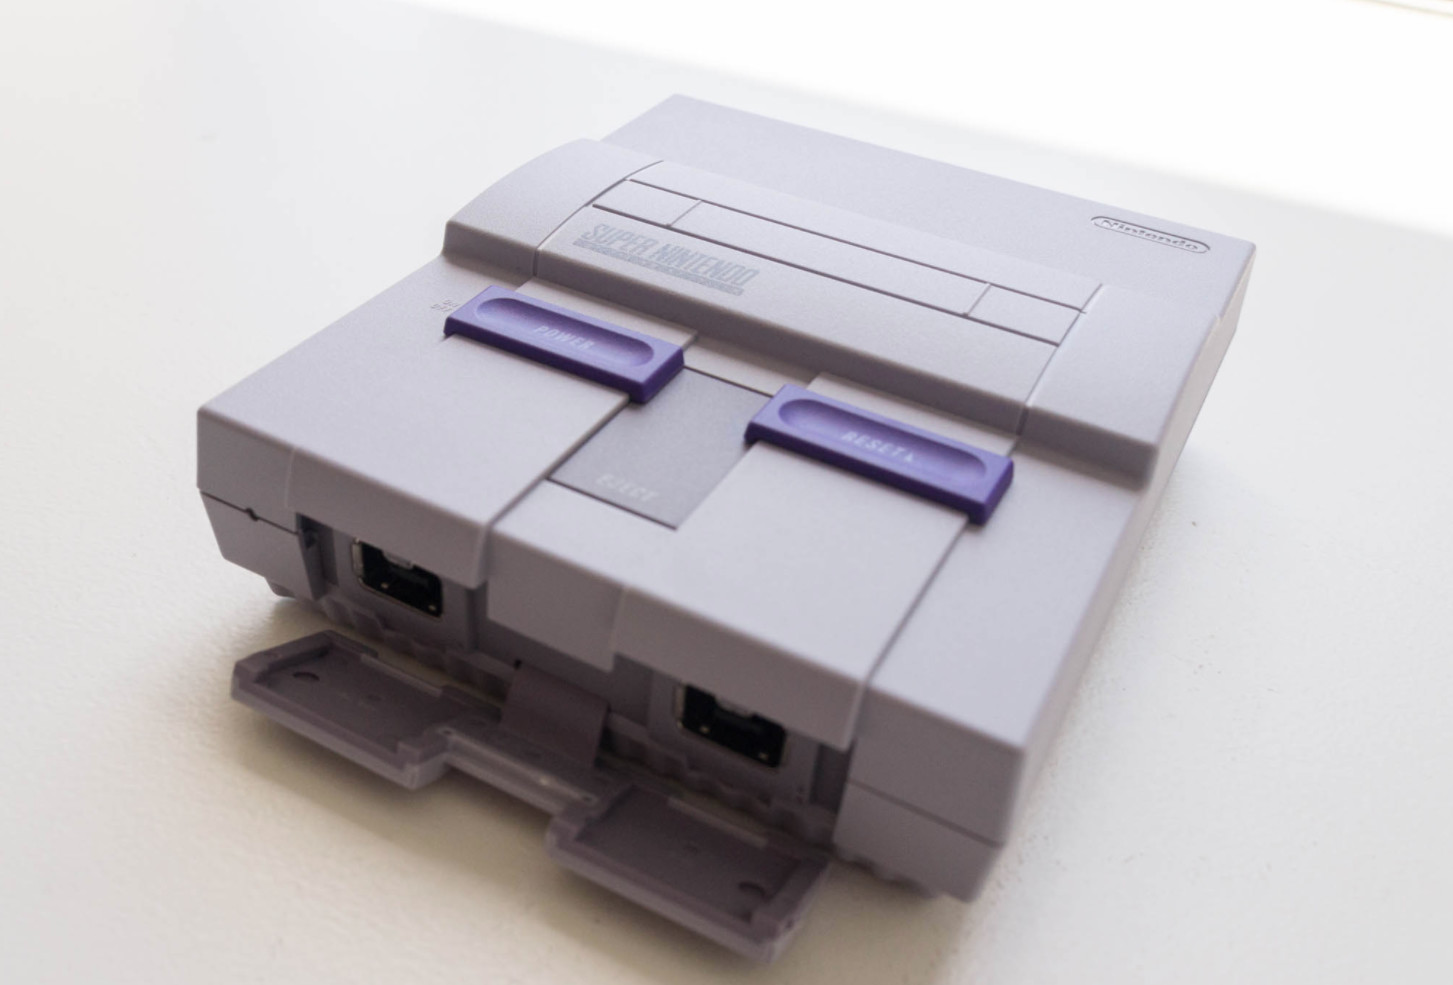 Shattered dreams: Super NES Classic Edition will not use